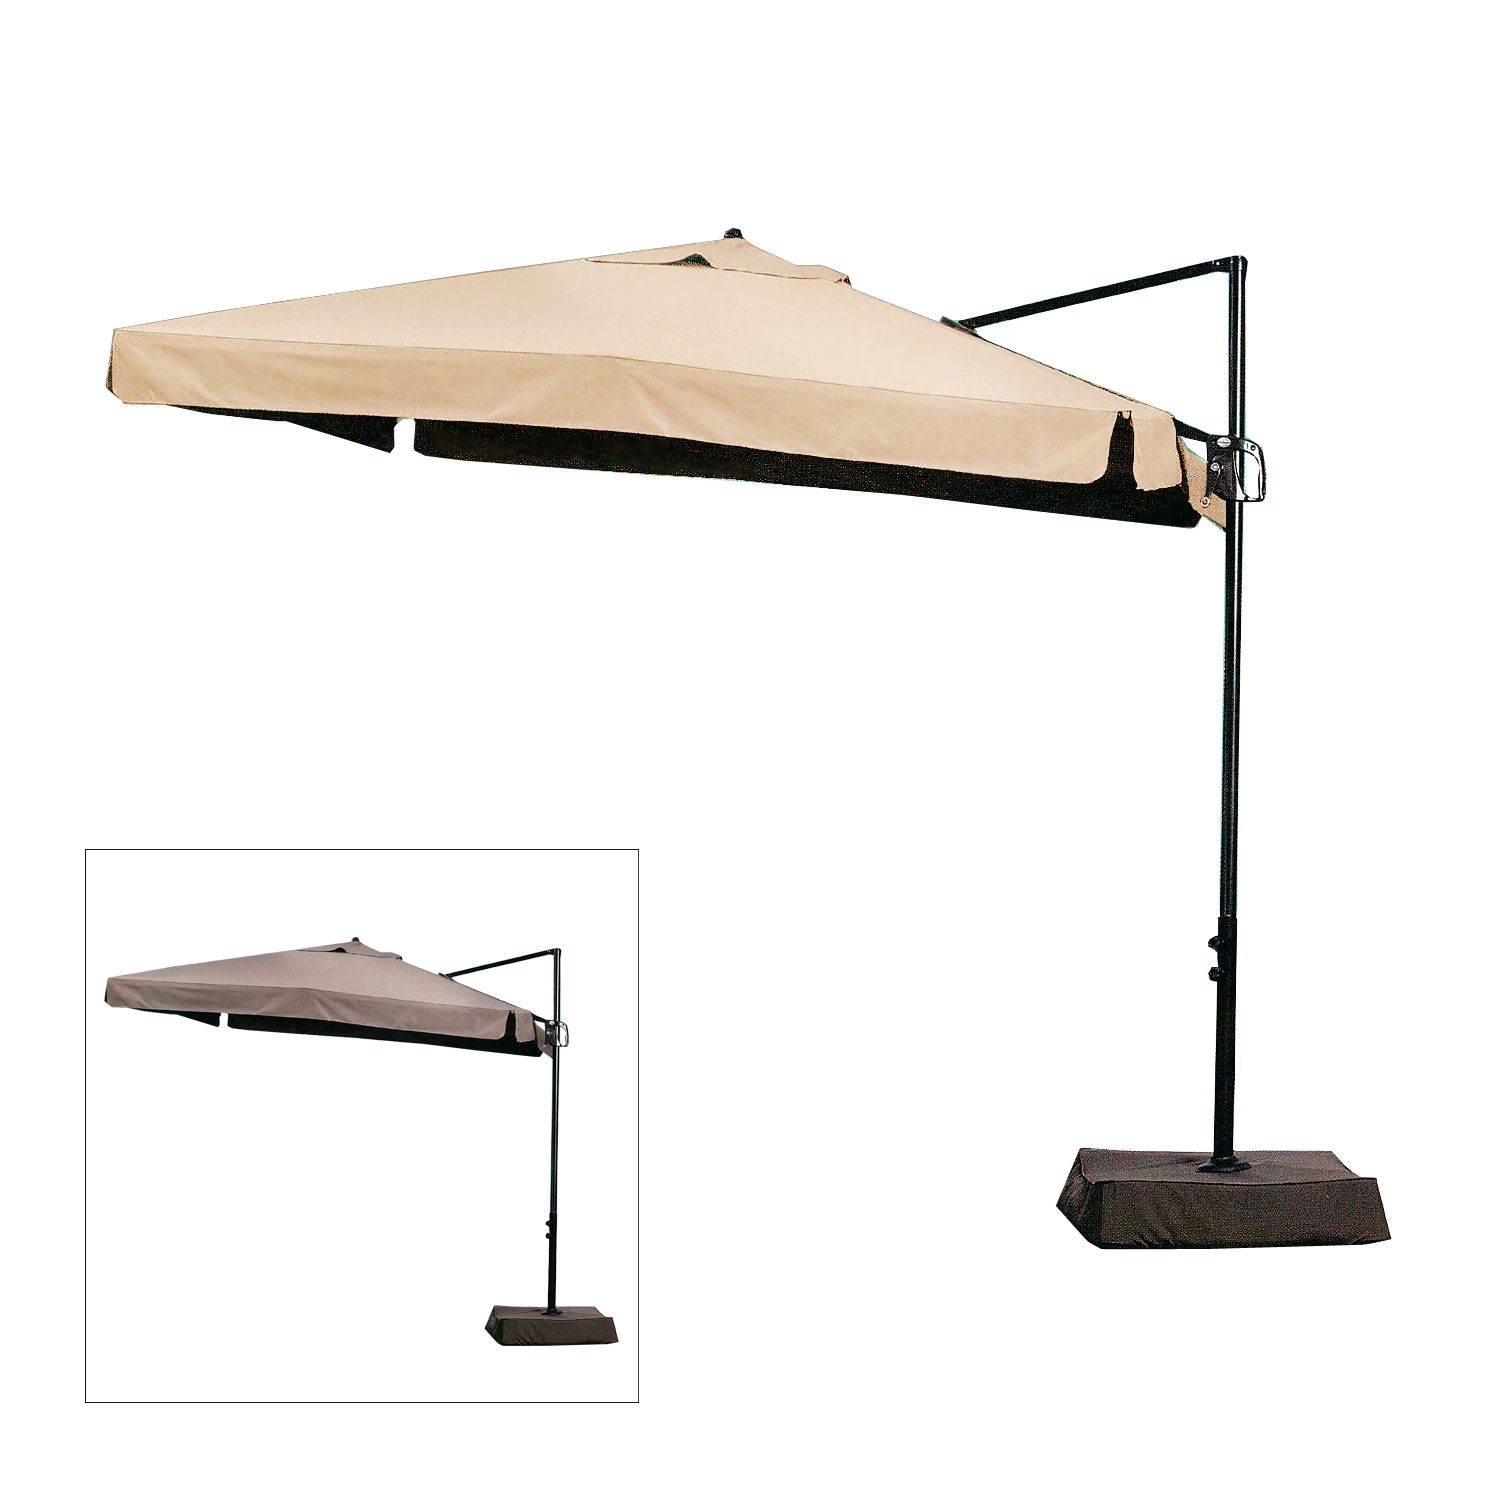 Replacement Canopy for Square Offset Umbrella Garden Winds